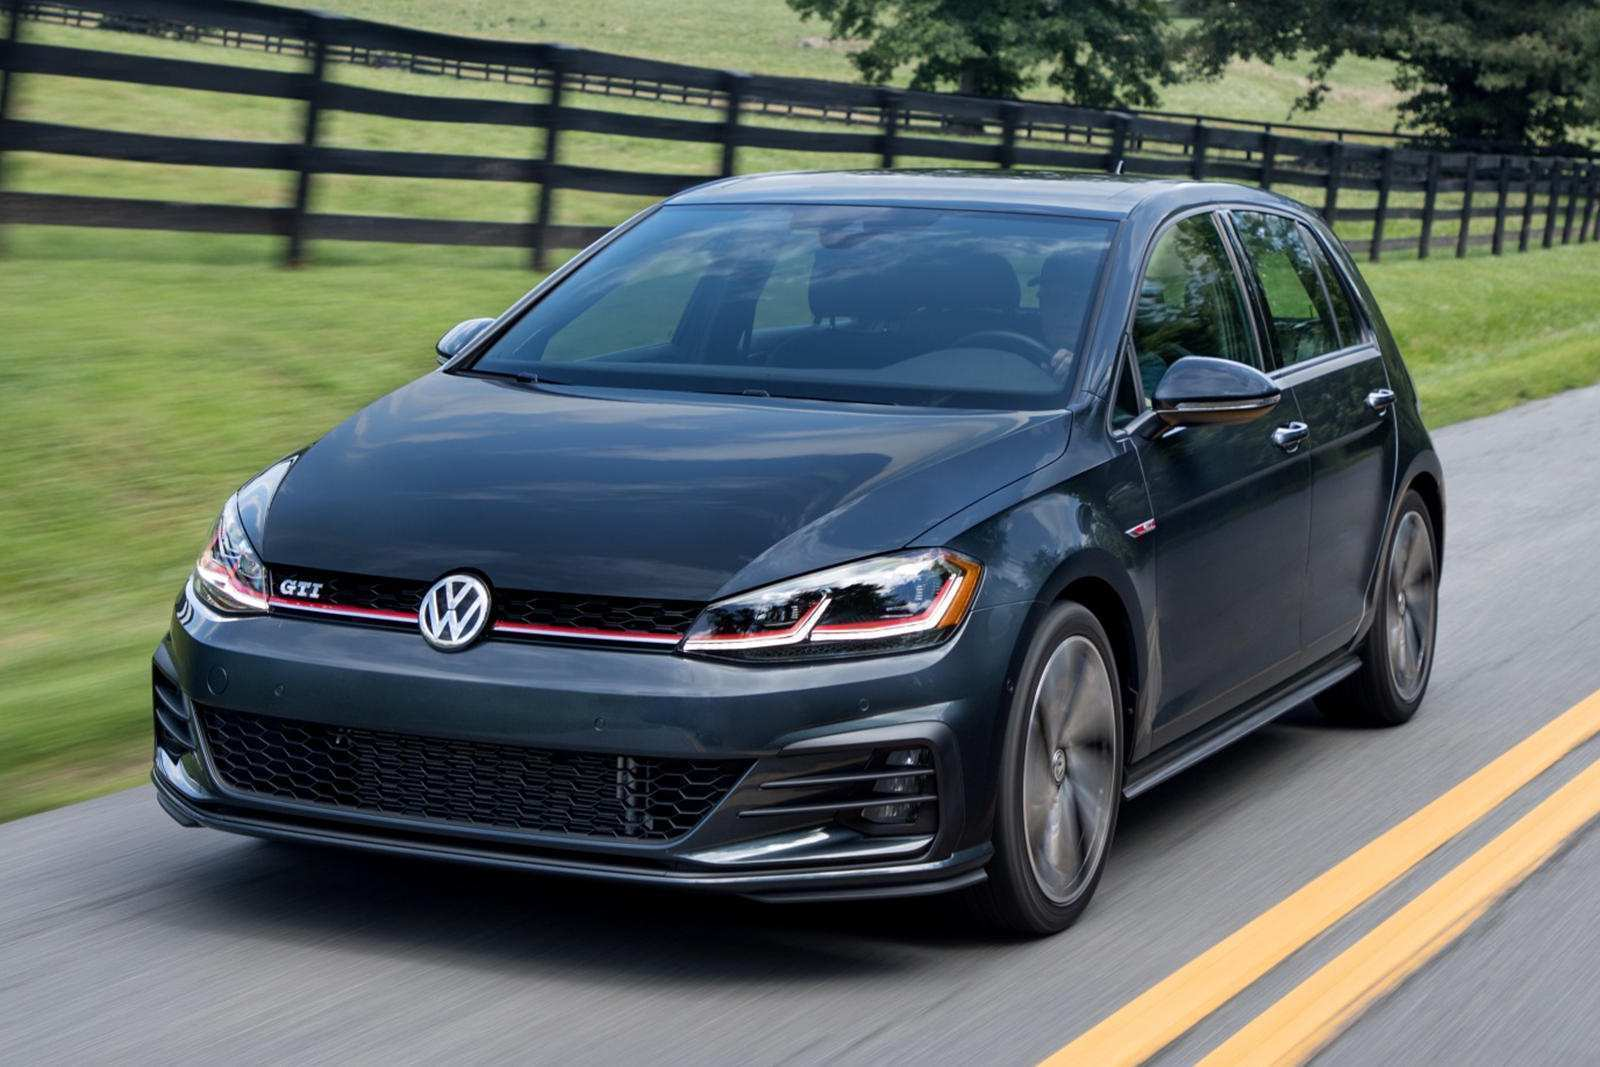 42 New 2019 Volkswagen Gti Rabbit Edition Exterior